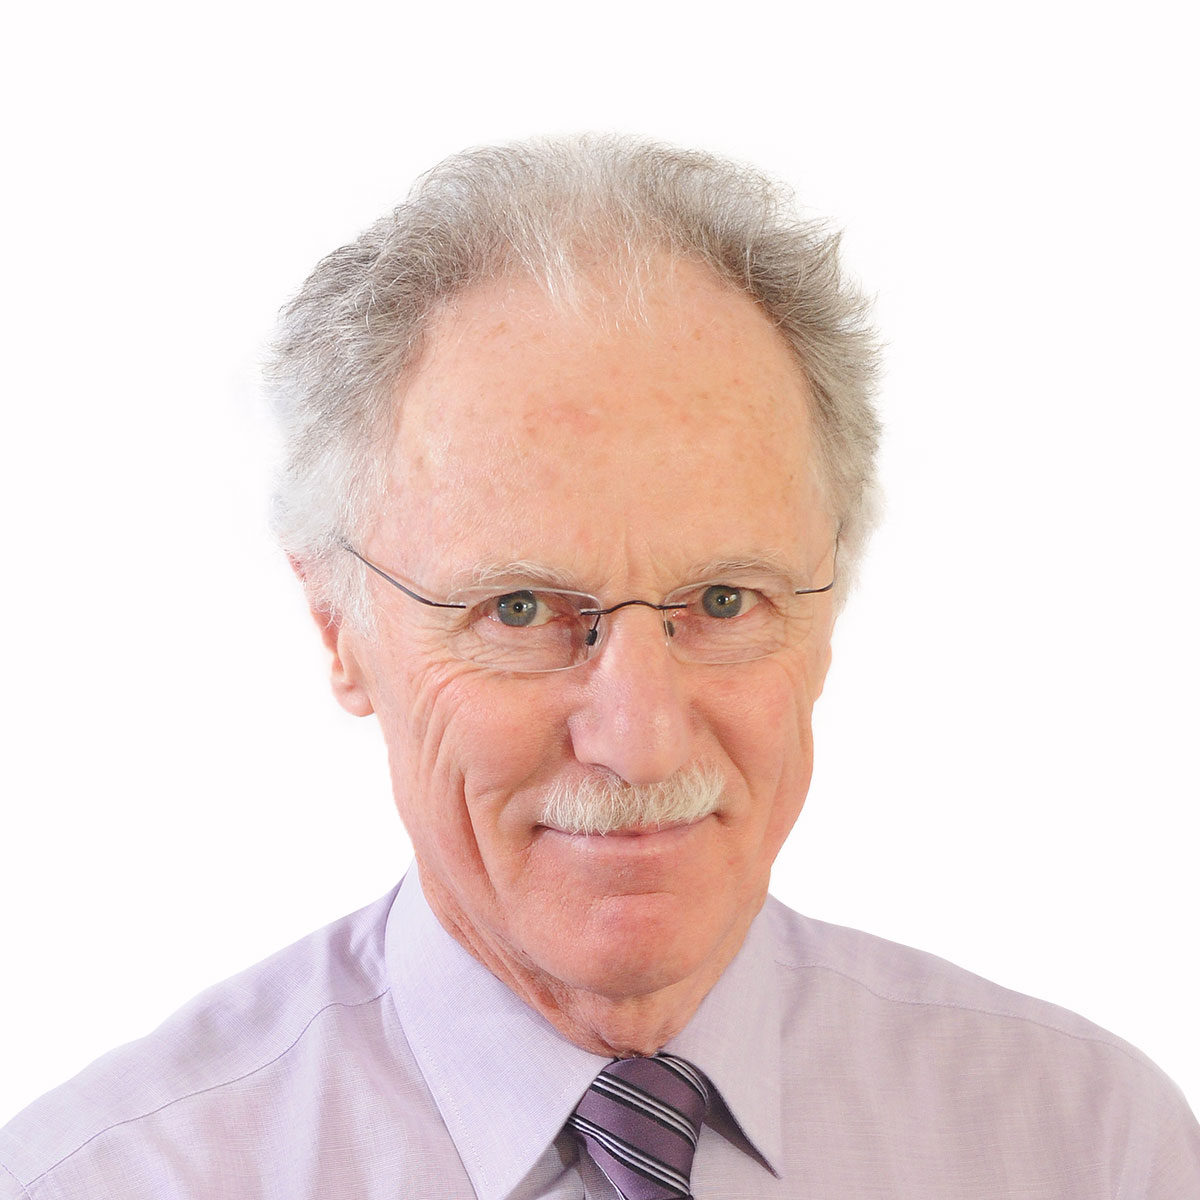 Stephen Slater - Principal ConsultantTalk to Stephen about: Material recovery, recyclate markets, waste minimisation